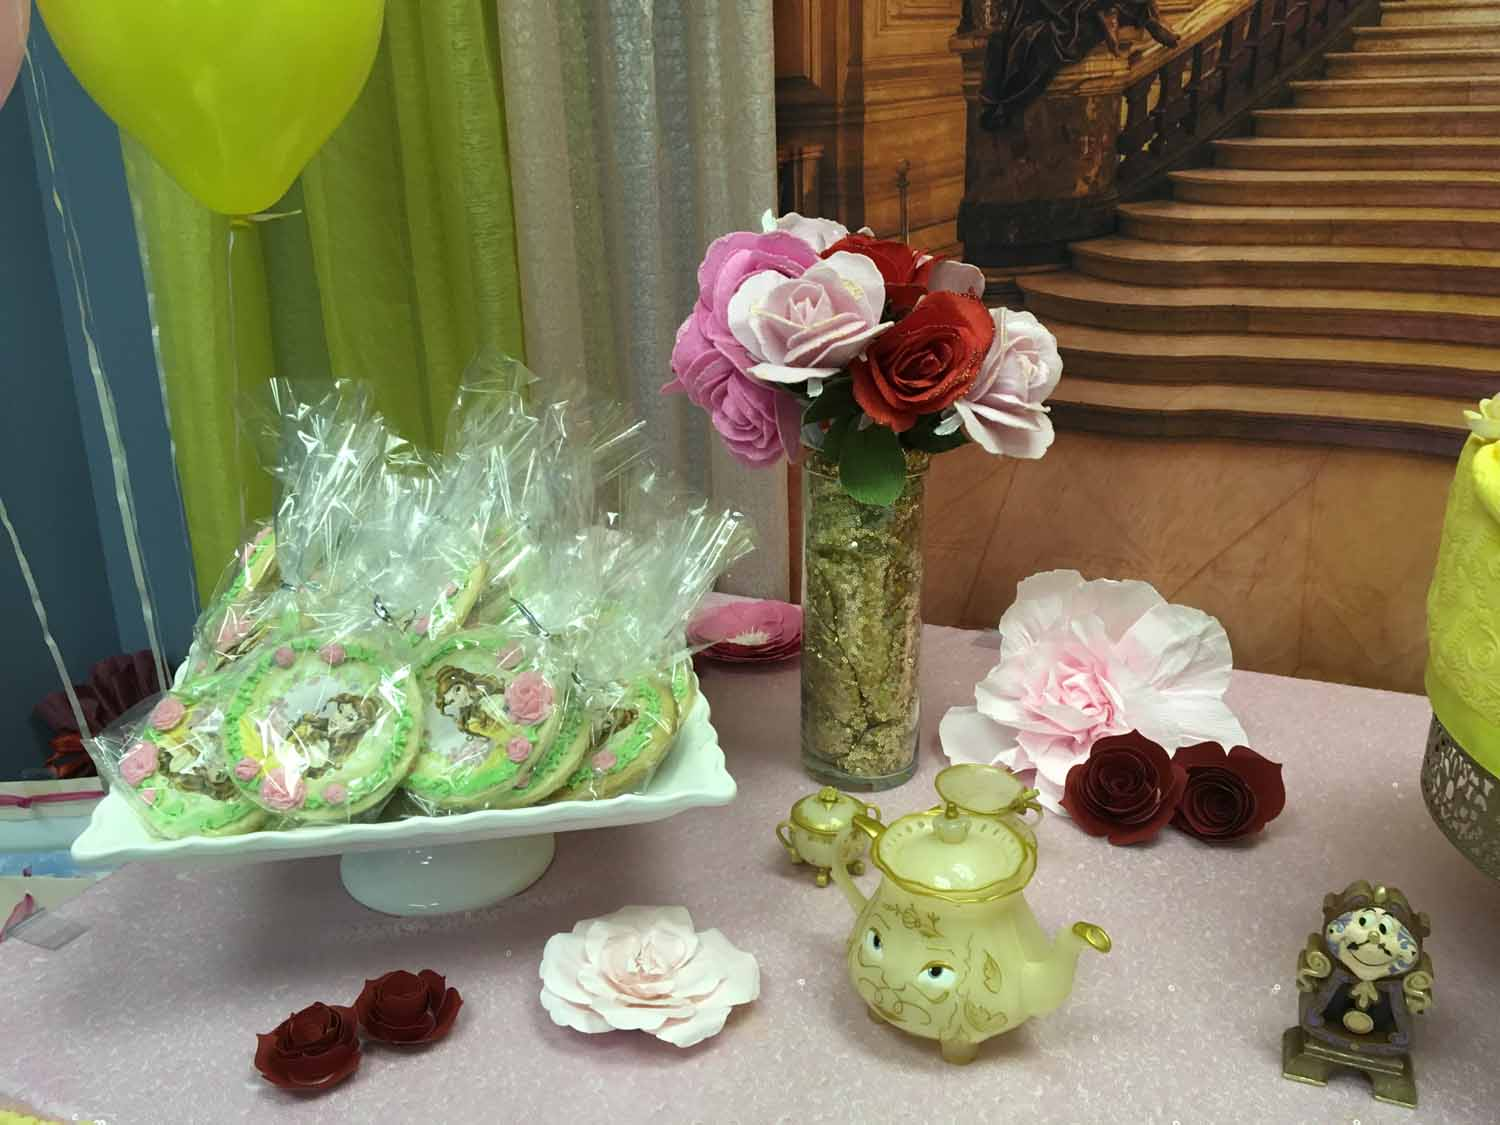 3 year old birthday party ideas orlando - beauty and the beast theme (10).jpg